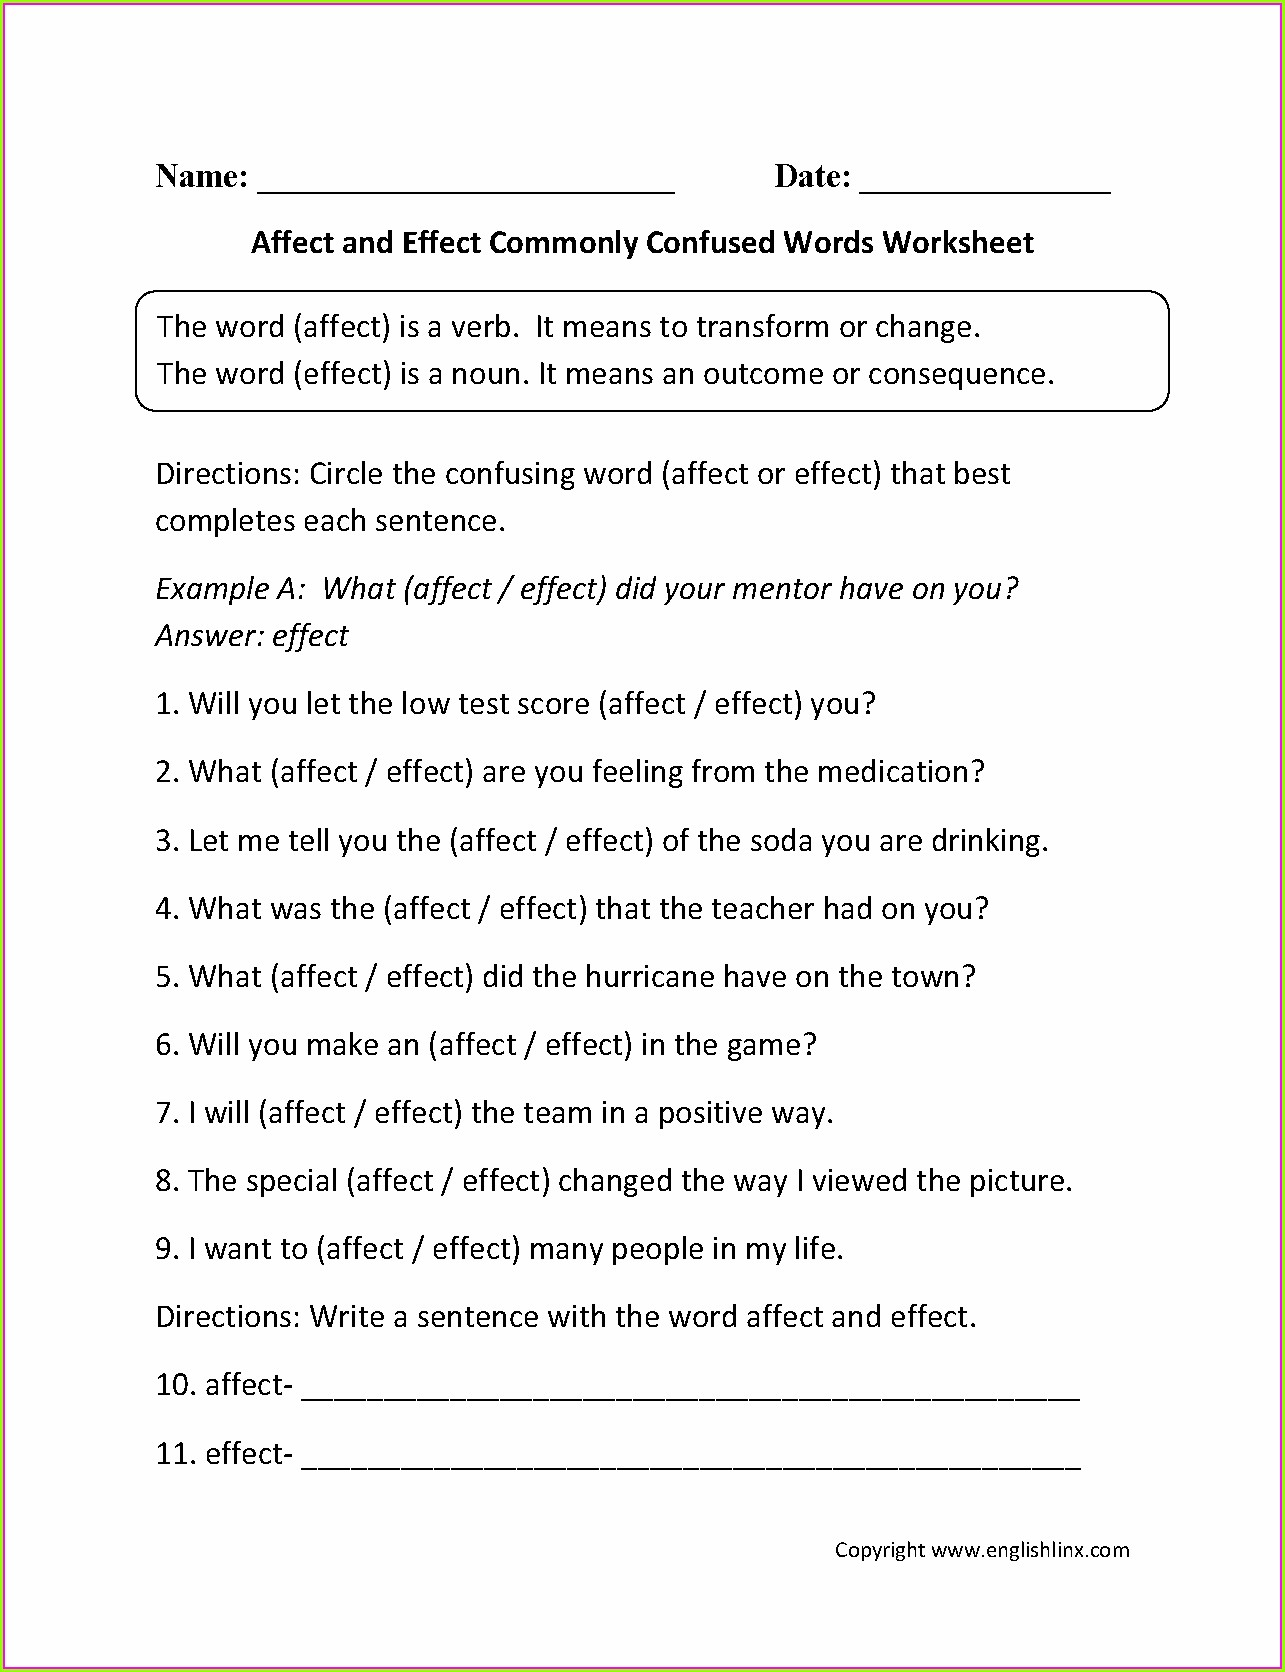 Words Commonly Confused Worksheet Part 1 Answers